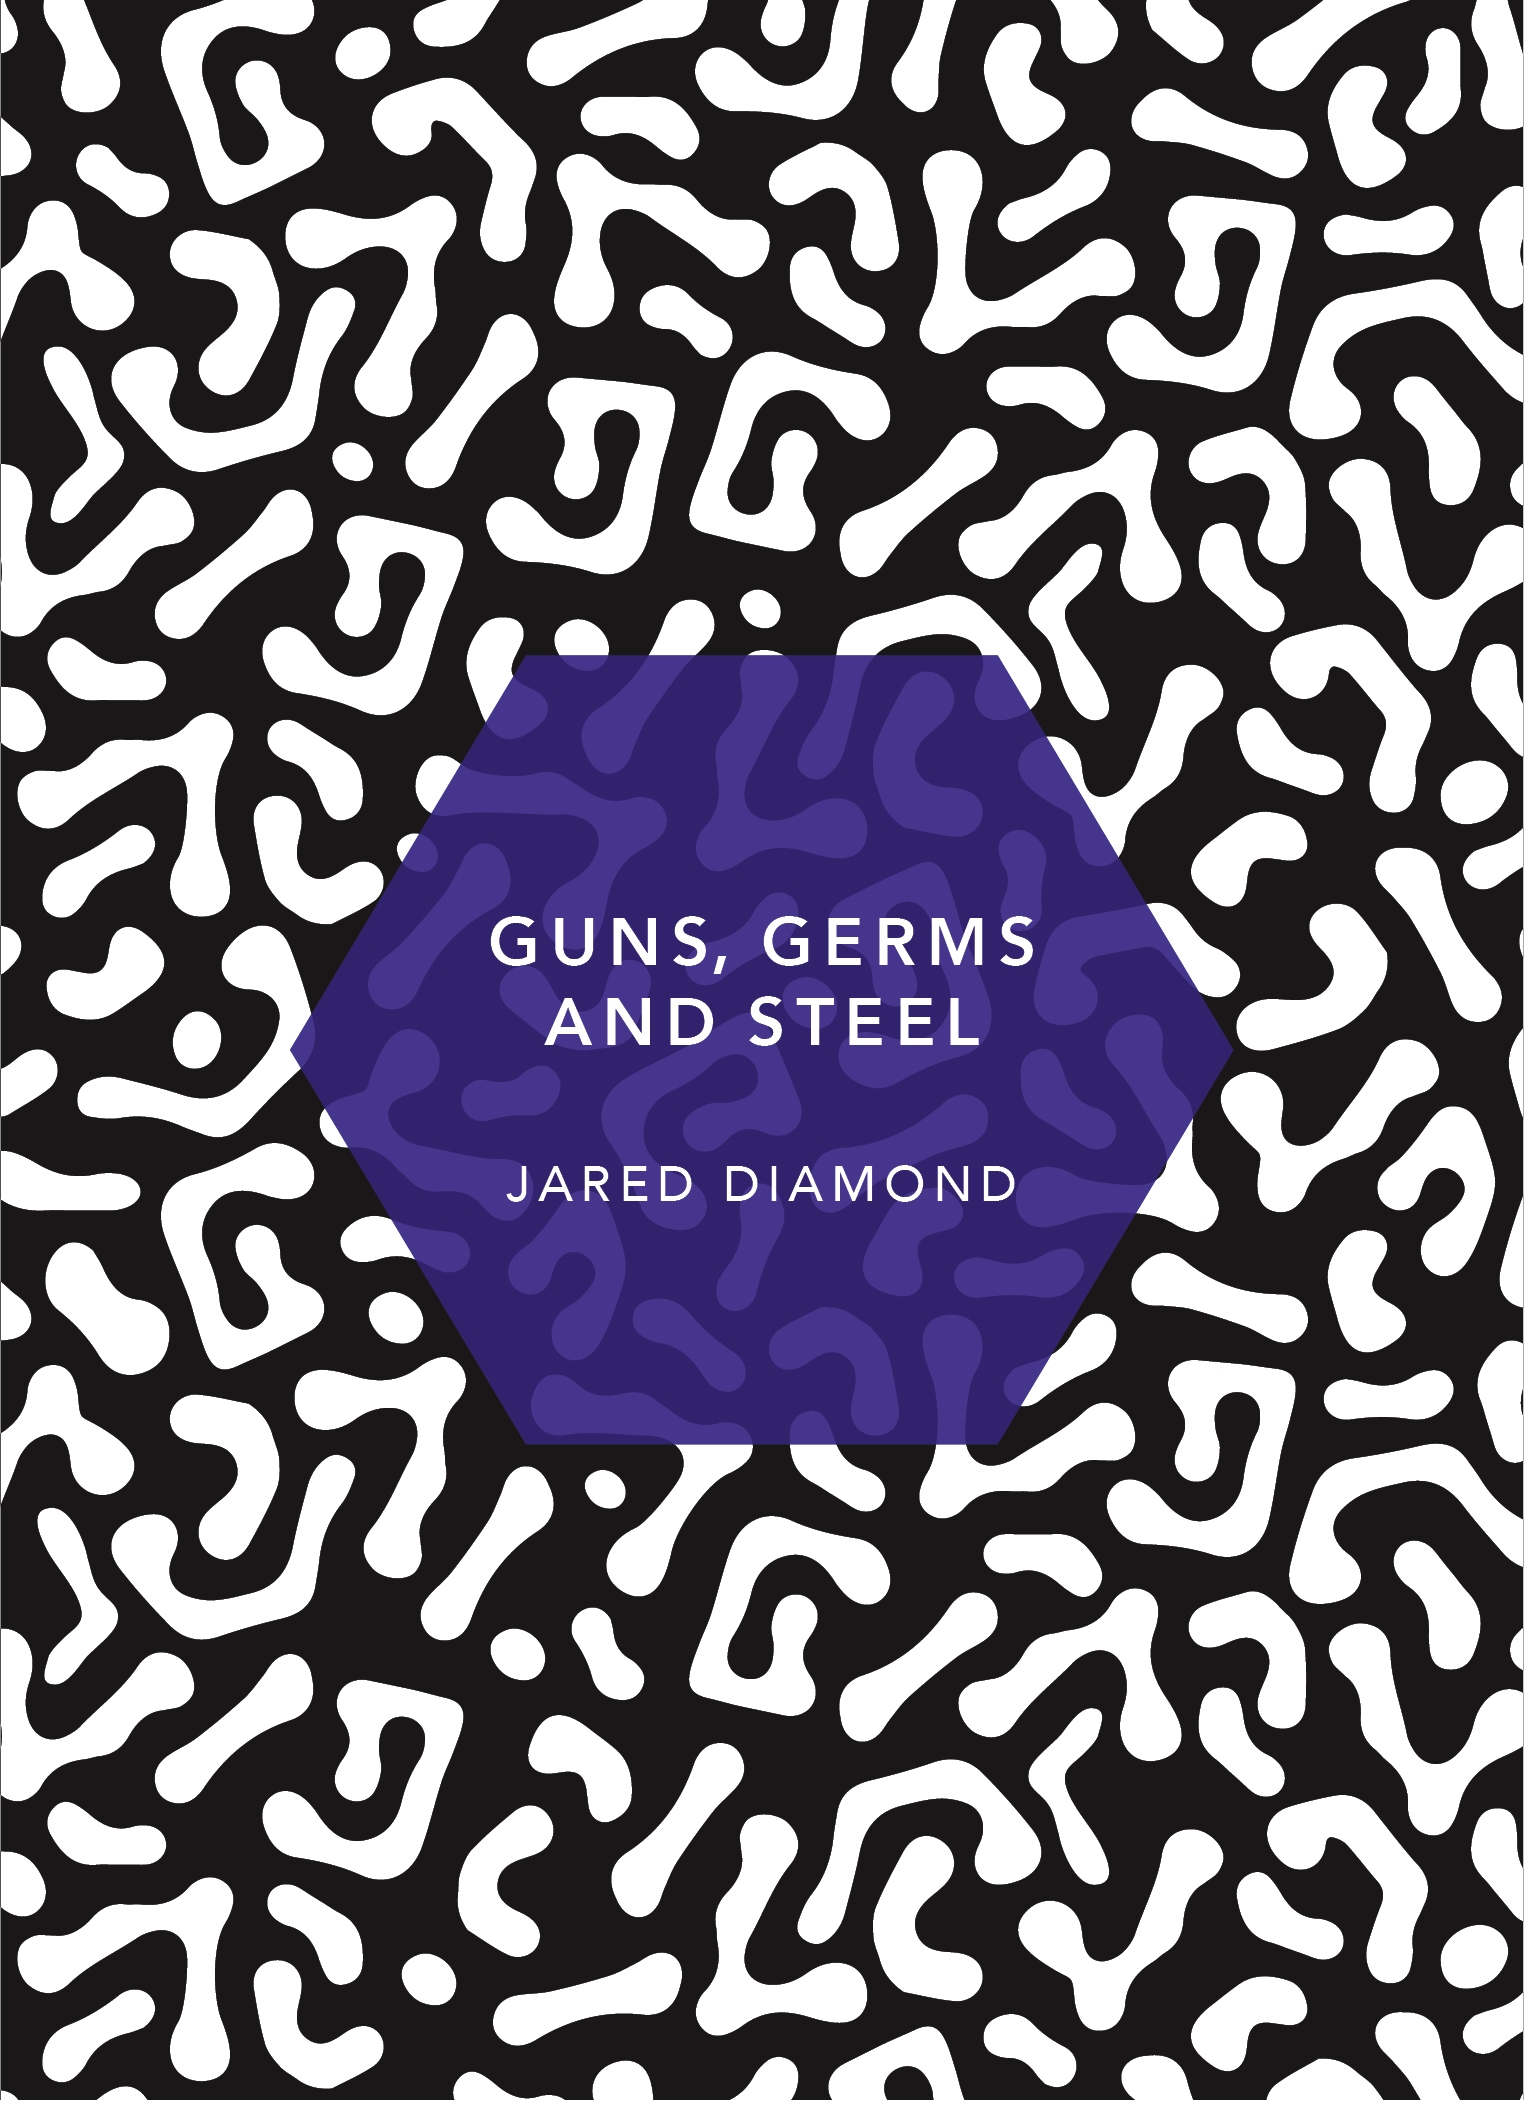 guns germs and steel jared diamond book.jpg